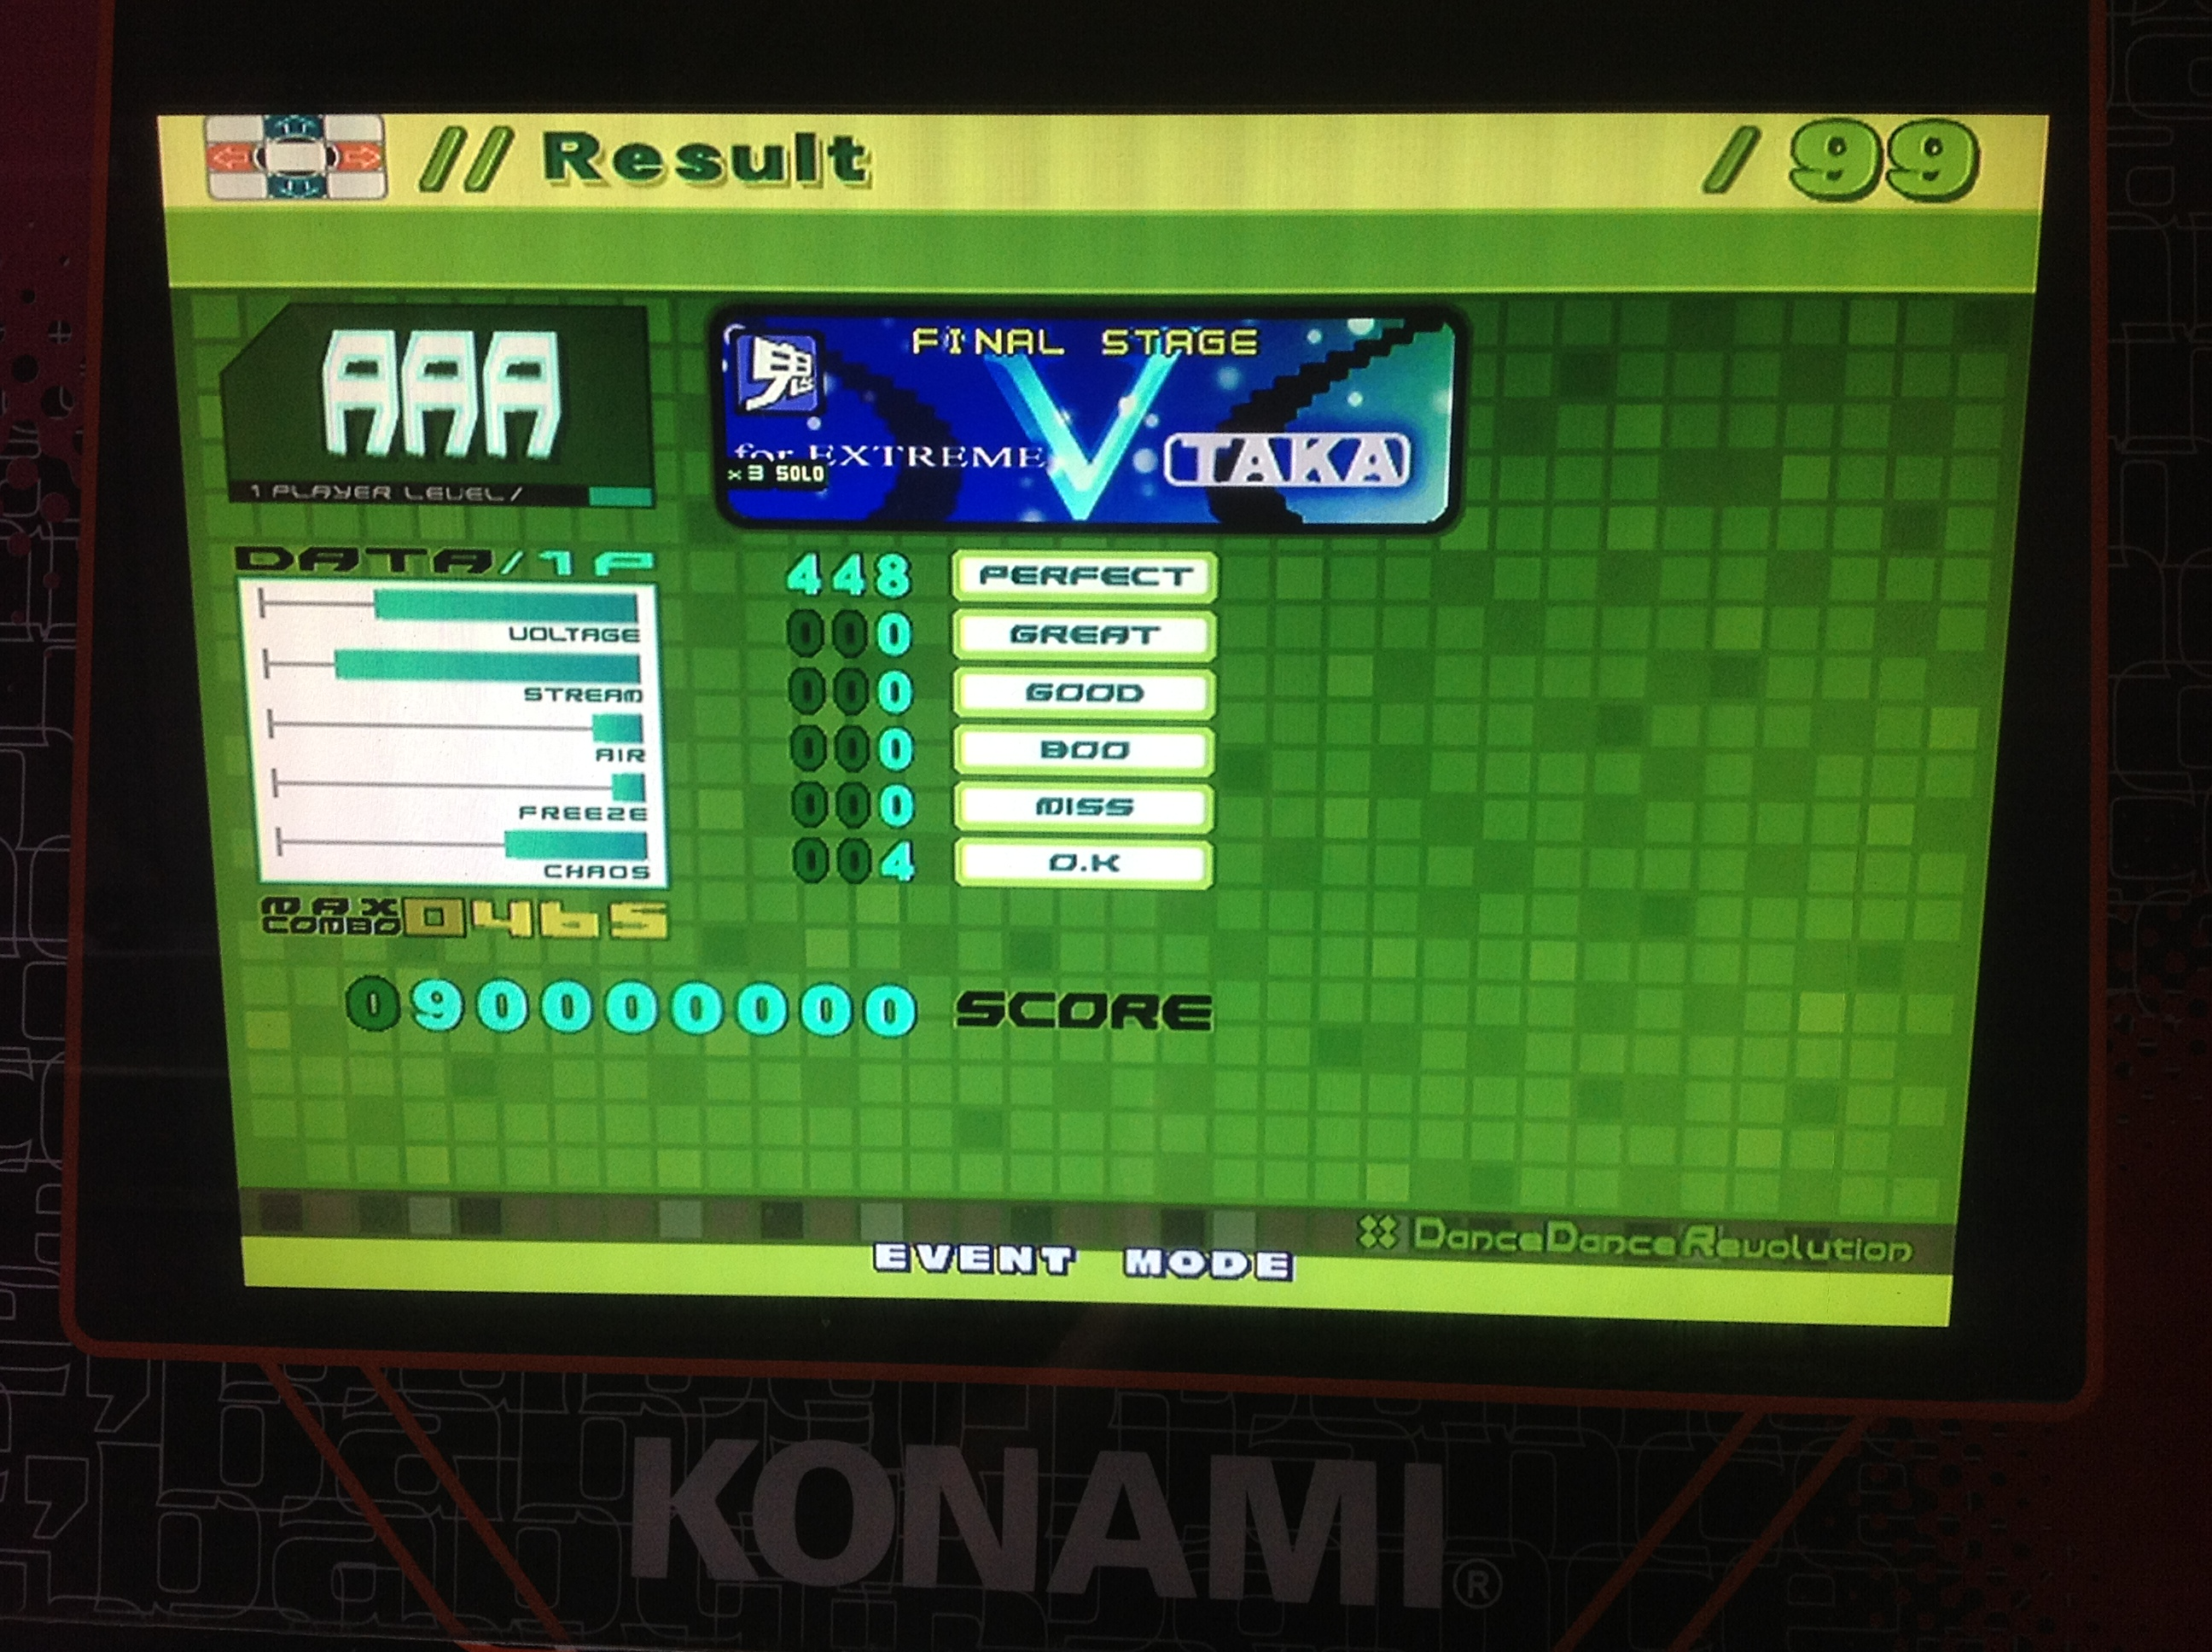 Kon - V (for EXTREME) (Challenge) AAA on DDR EXTREME (Japan)